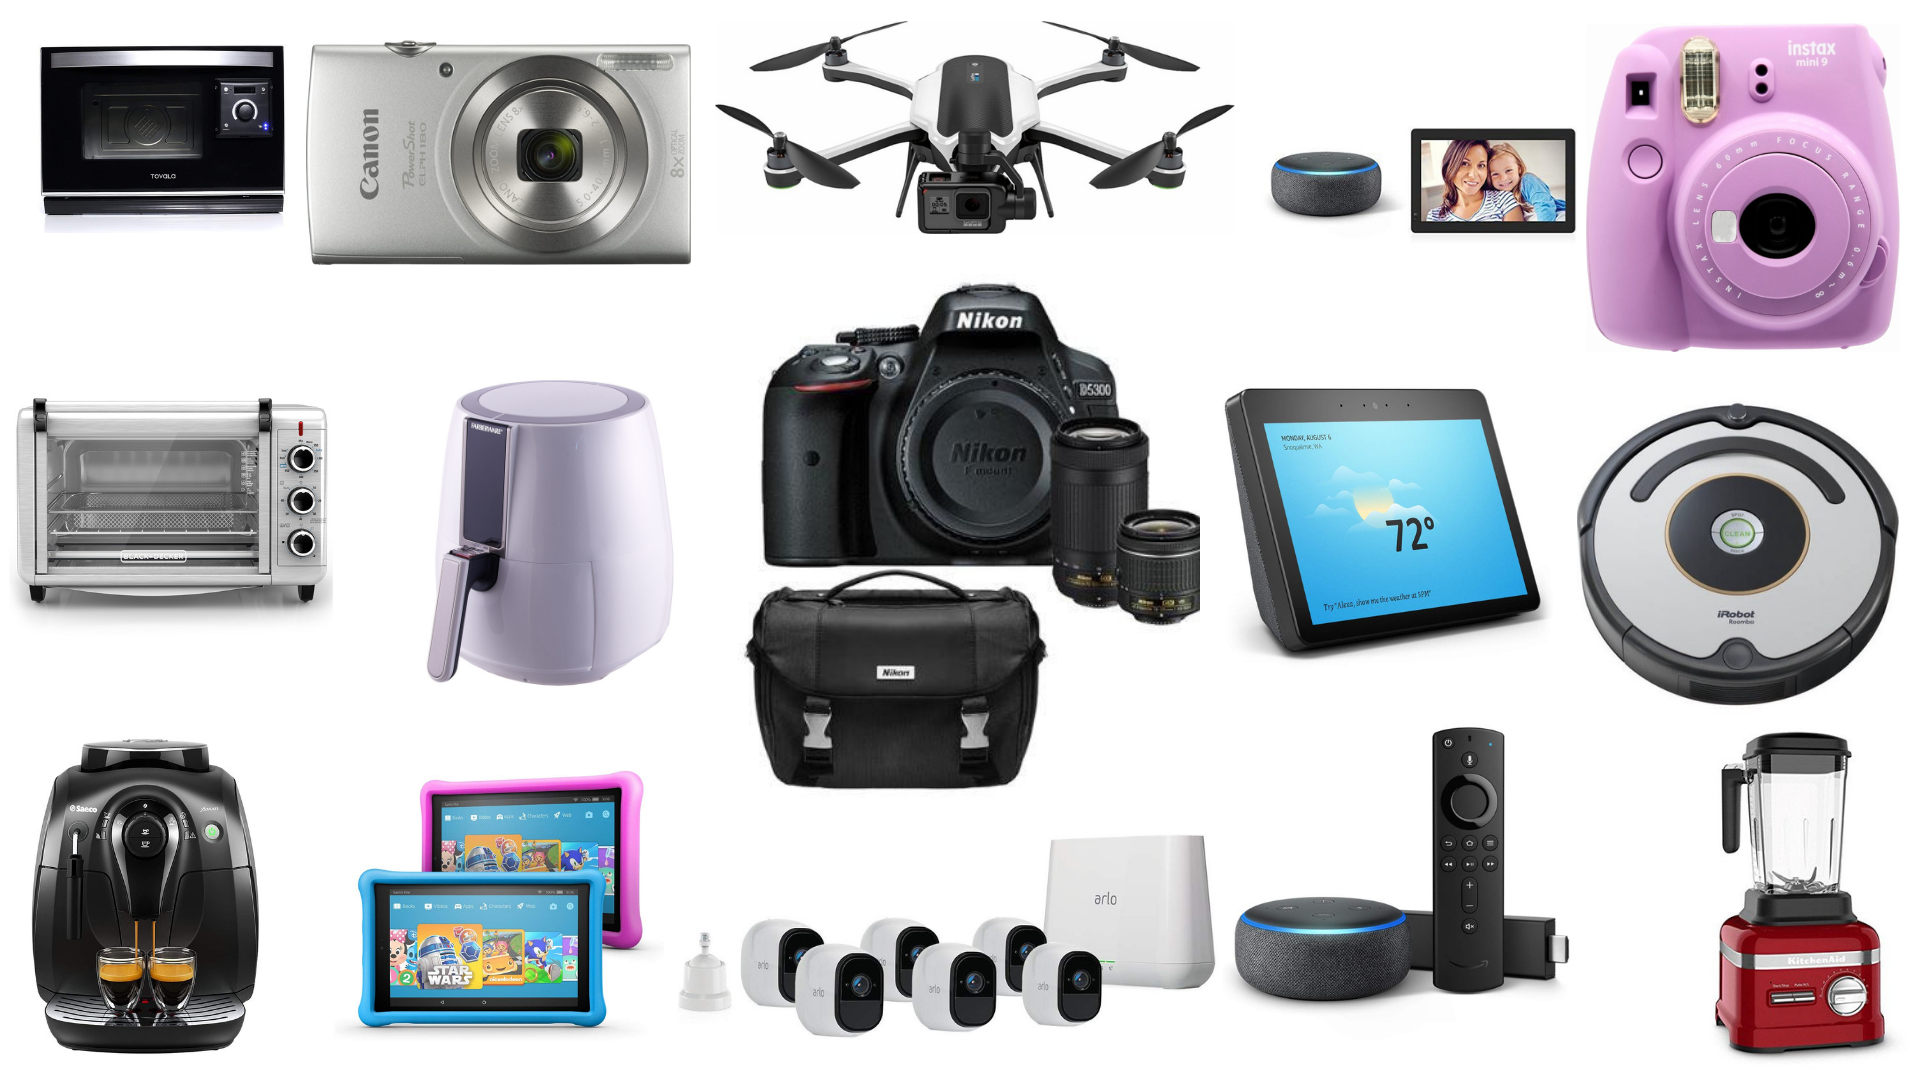 Best Pre Black Friday Deals For Nov 19 Nikon Dslr Cameras Ipad Gopro Drones Roomba Fire Tv Stick 4k